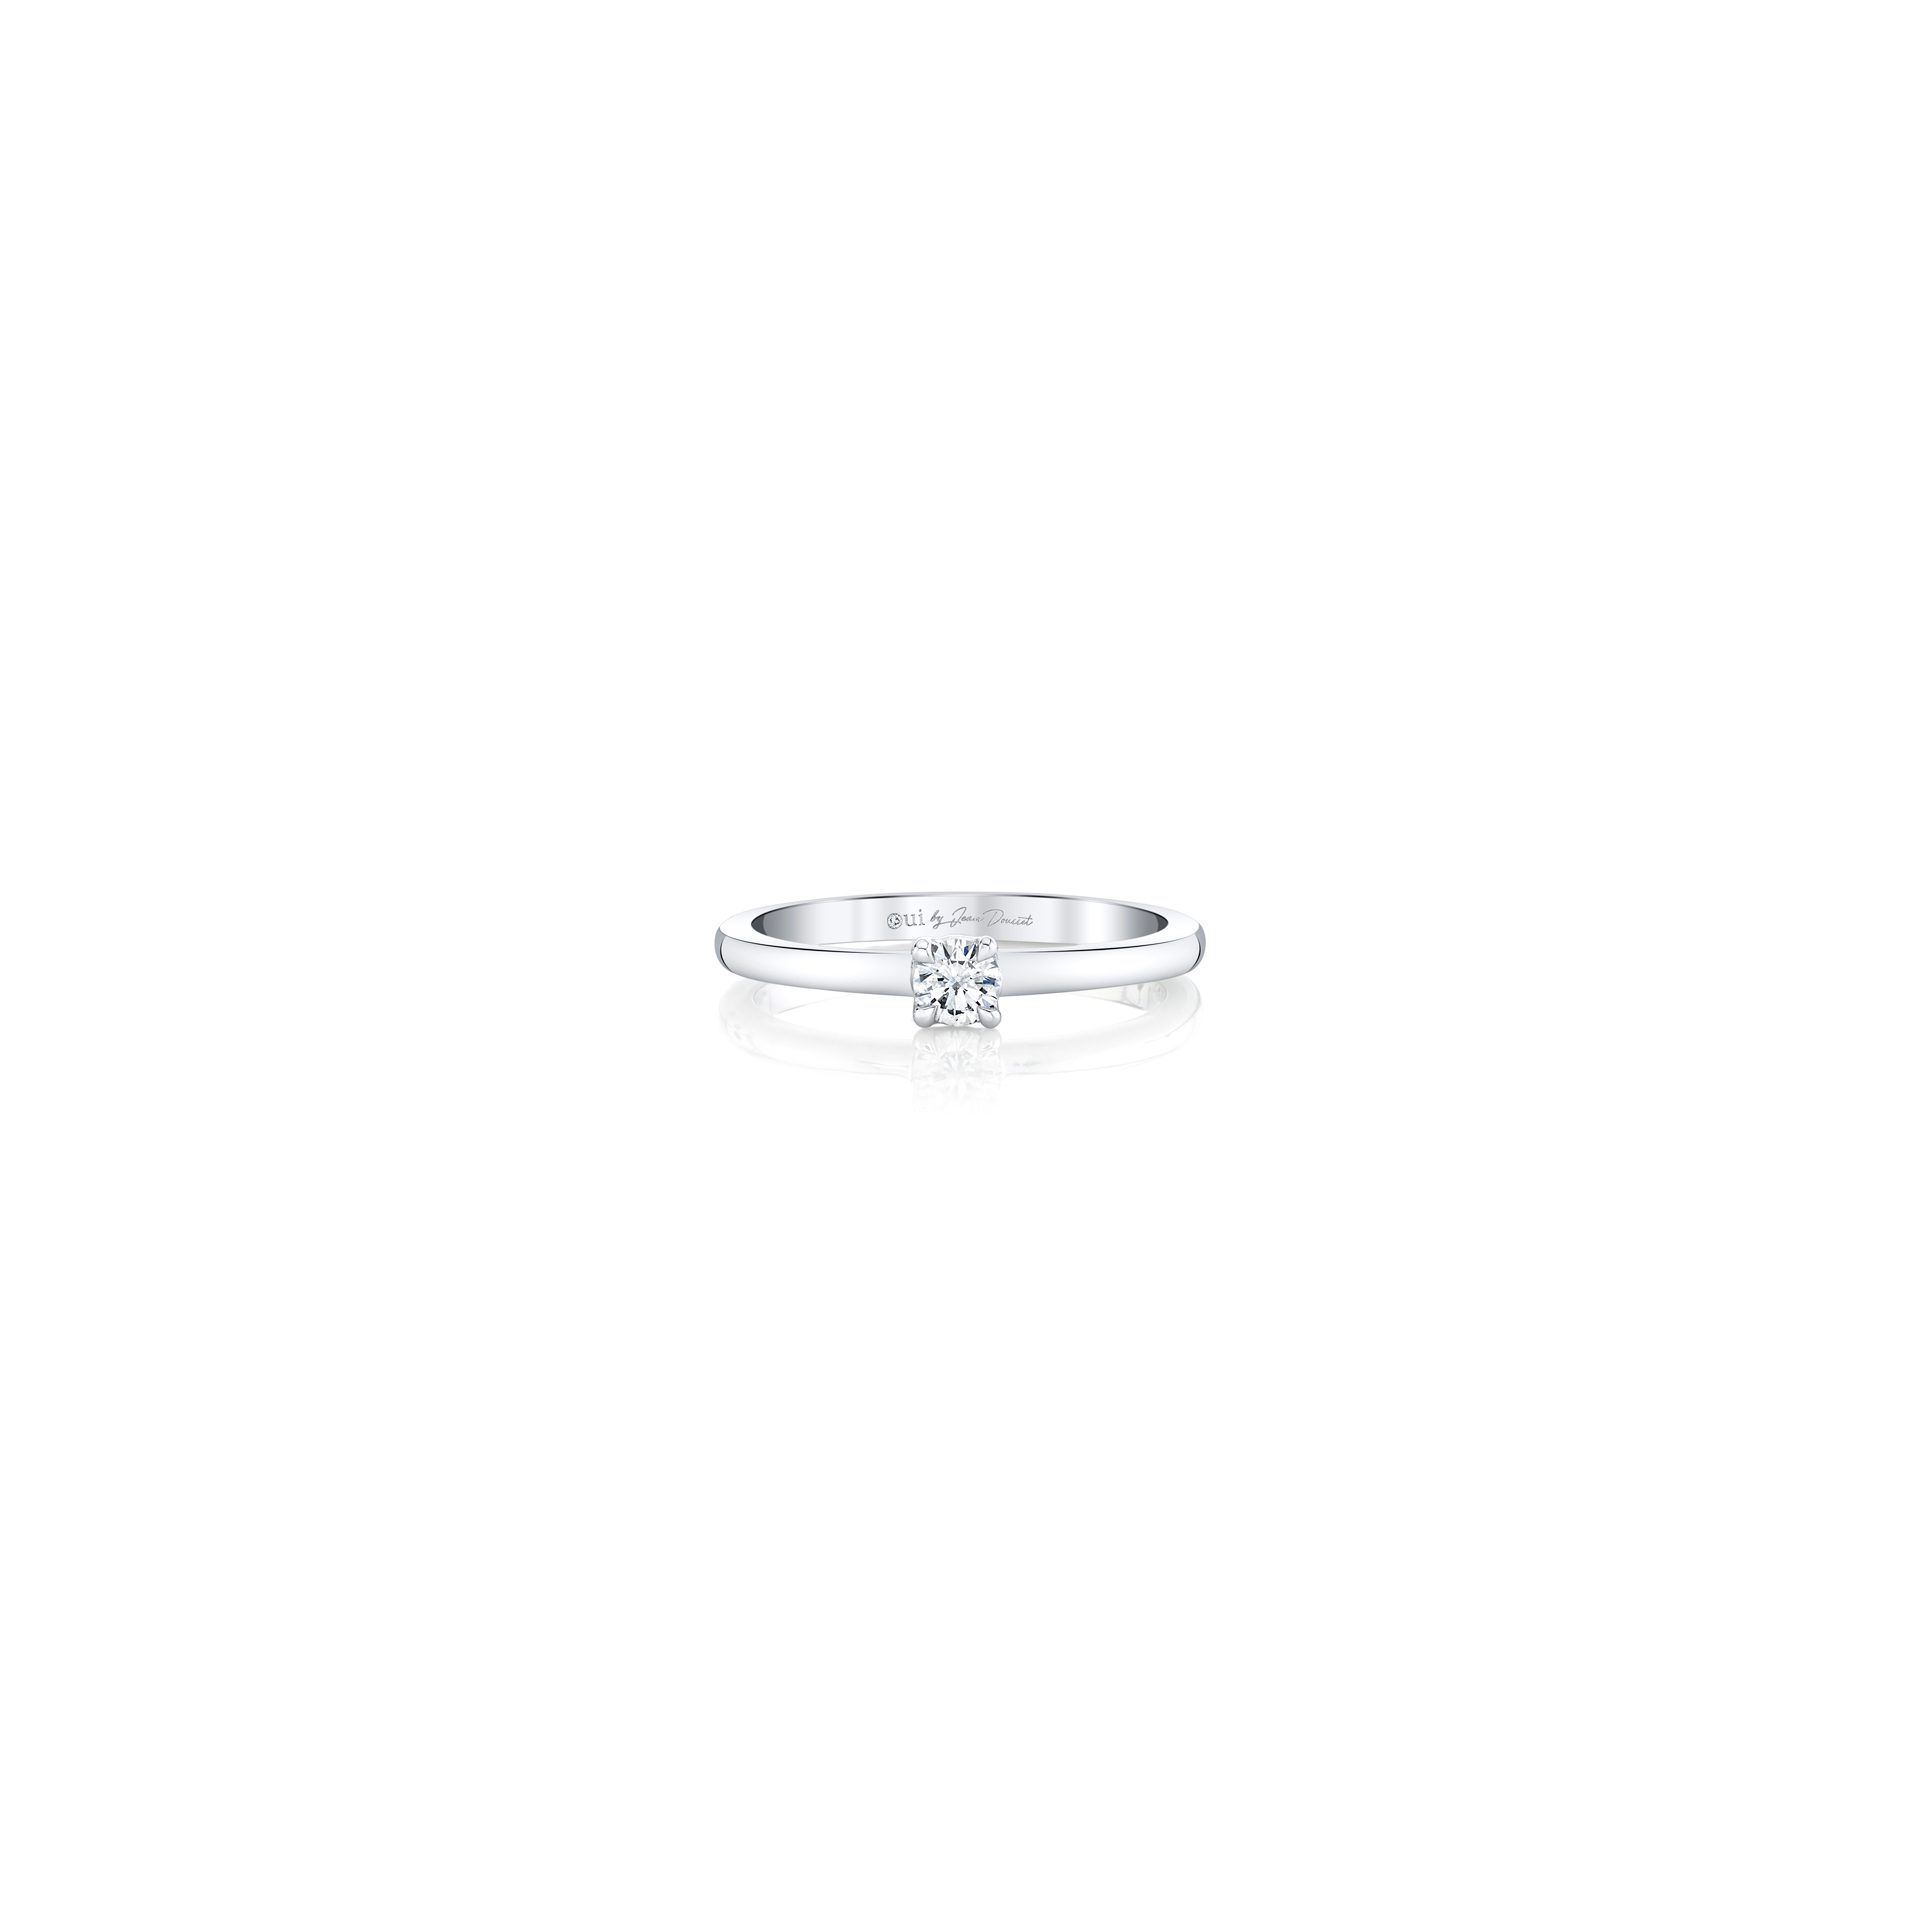 La Petite Round Brilliant Diamond Wedding Band in 18k White Gold Front View by Oui by Jean Dousset